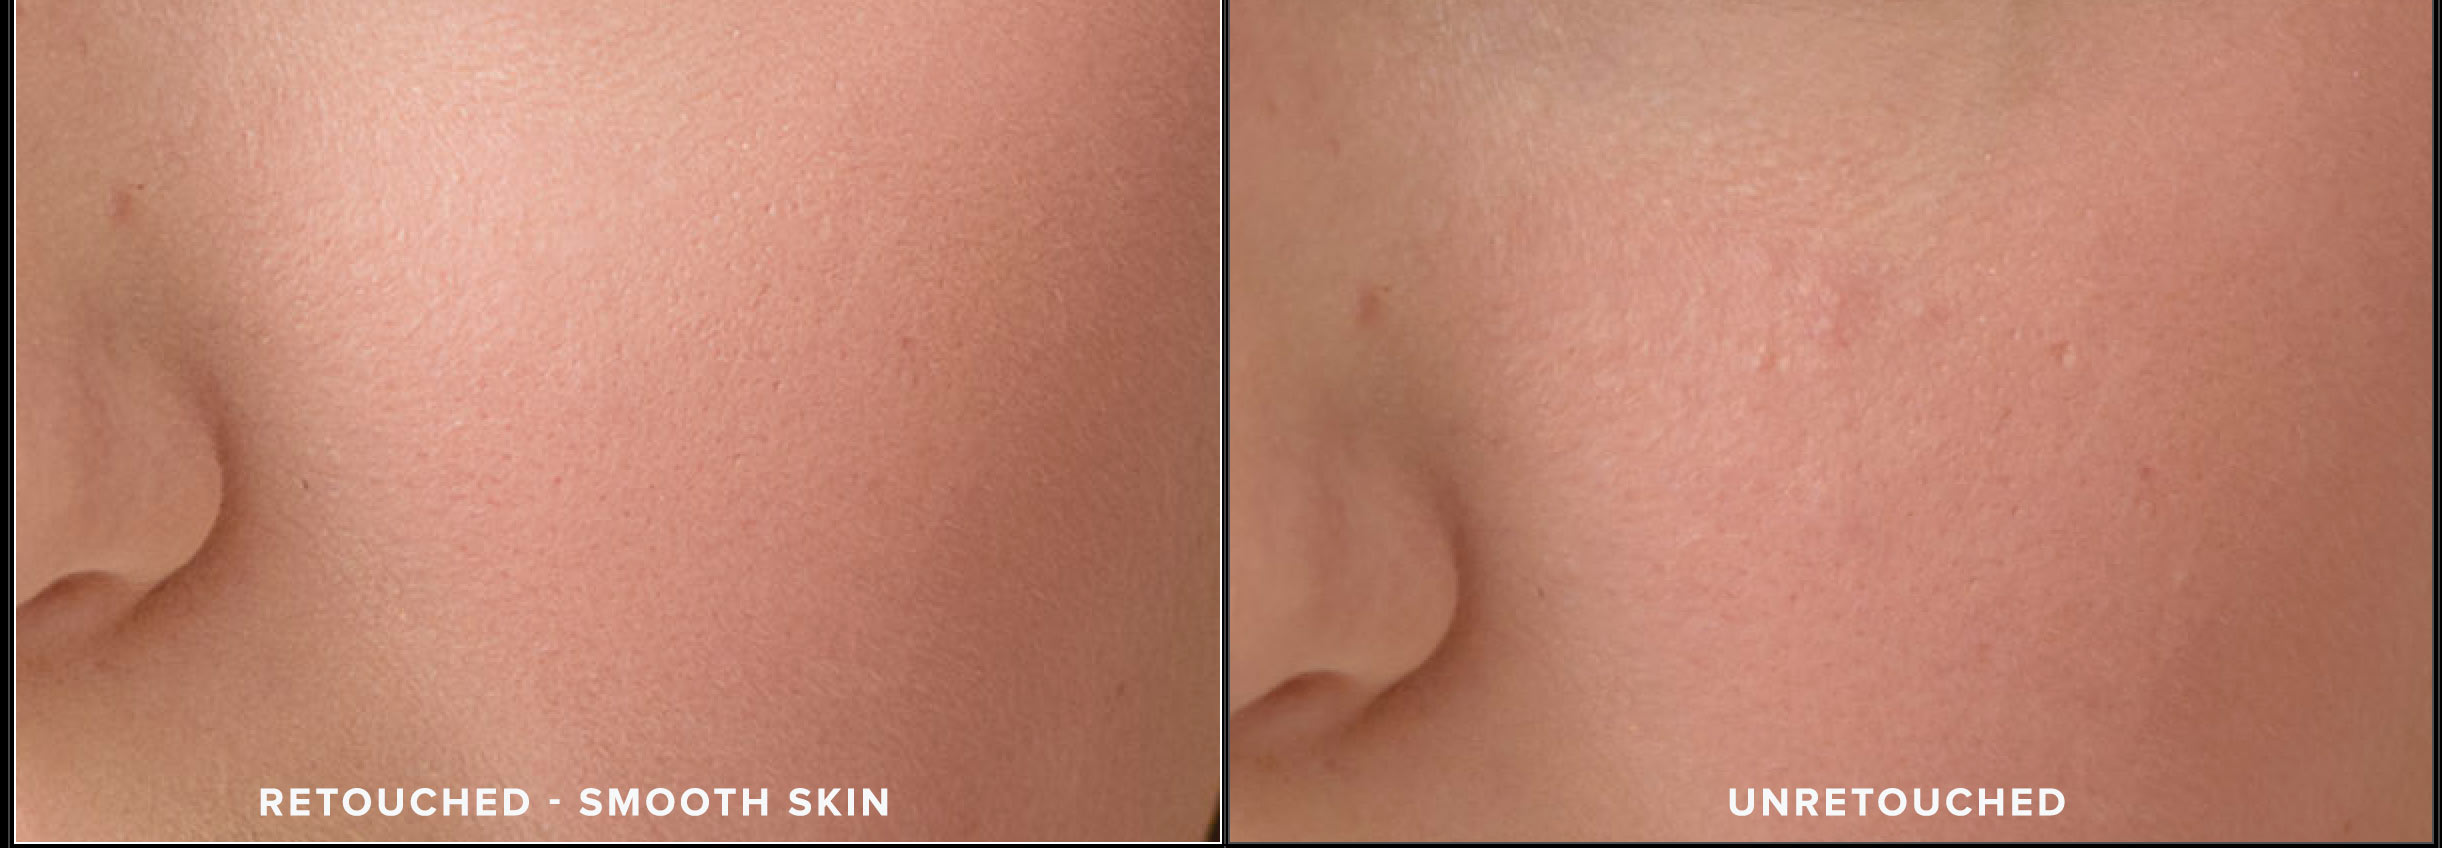 Image of retouched and unretouched smooth skin. N. Lalor Photography. Photography Studio in Greenwich, Connecticut.